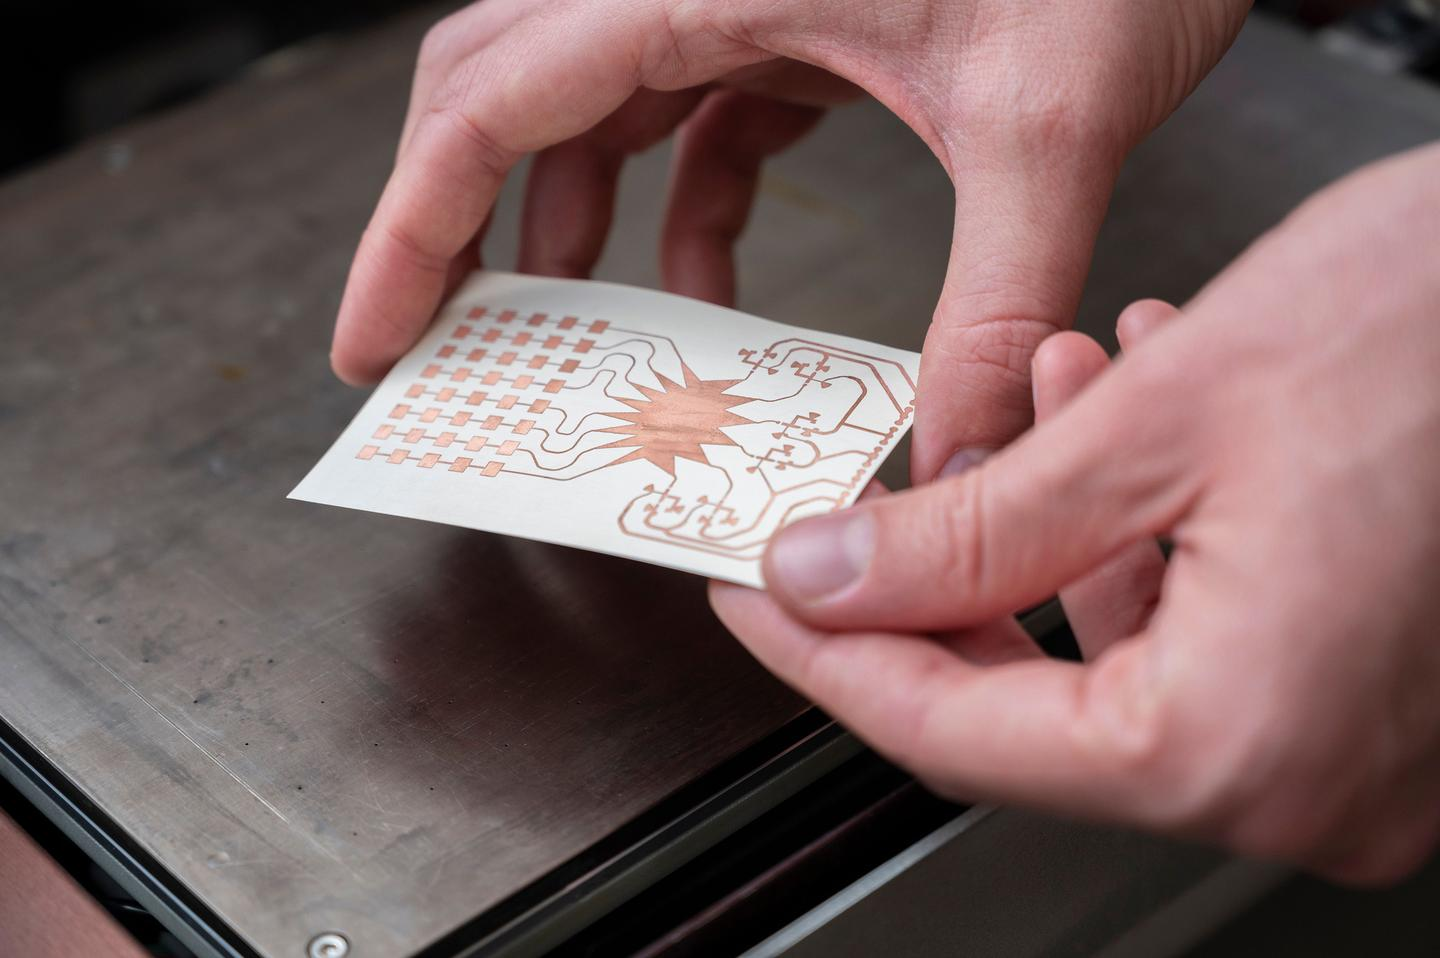 This inkjet-printed prototype of a mm-wave harvester allows devices to pull energy from 5G wireless communication systems out of the air and convert it into electricity